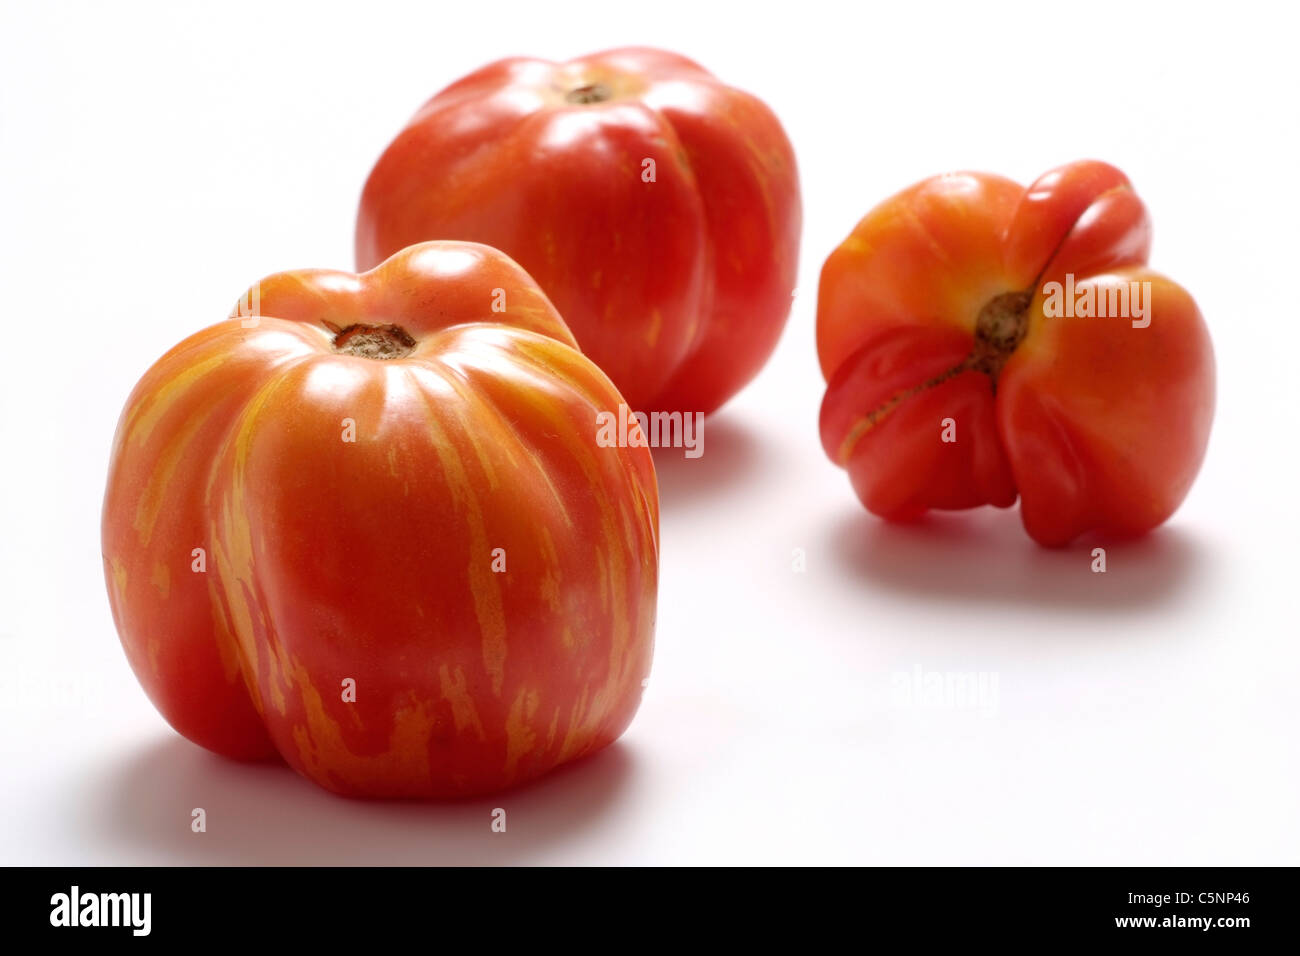 Tomato varieties: Shimmeigs striped hollow - Stock Image